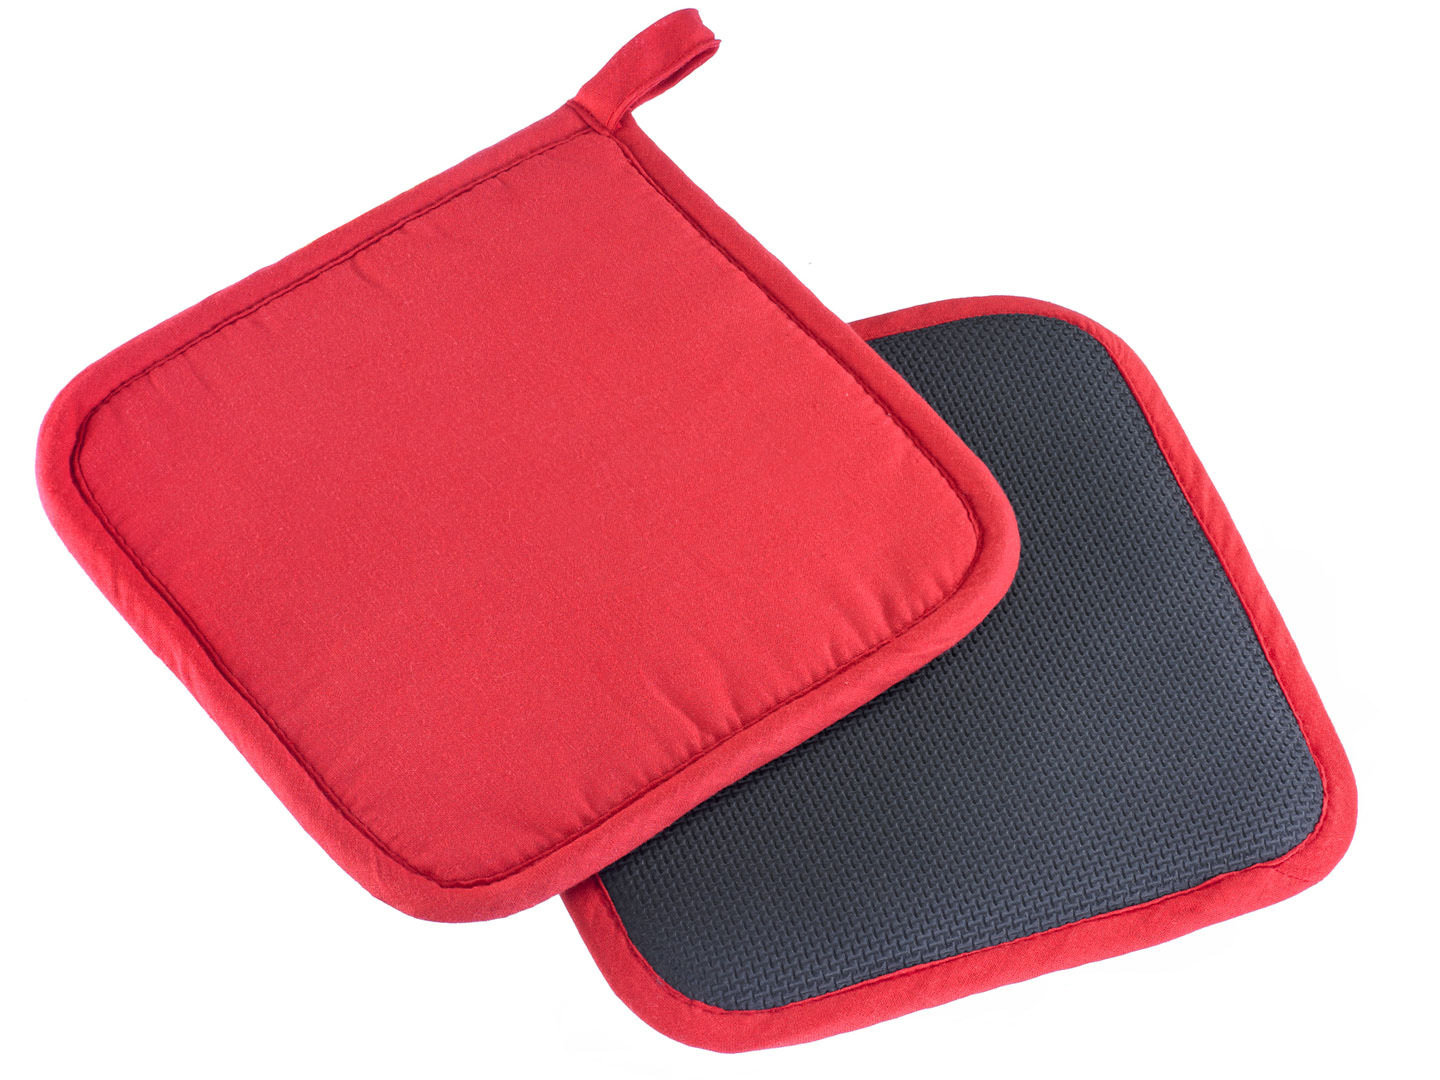 WESTMARK 2 pot holders red-black slip-resistant Neoprene + cotton washable